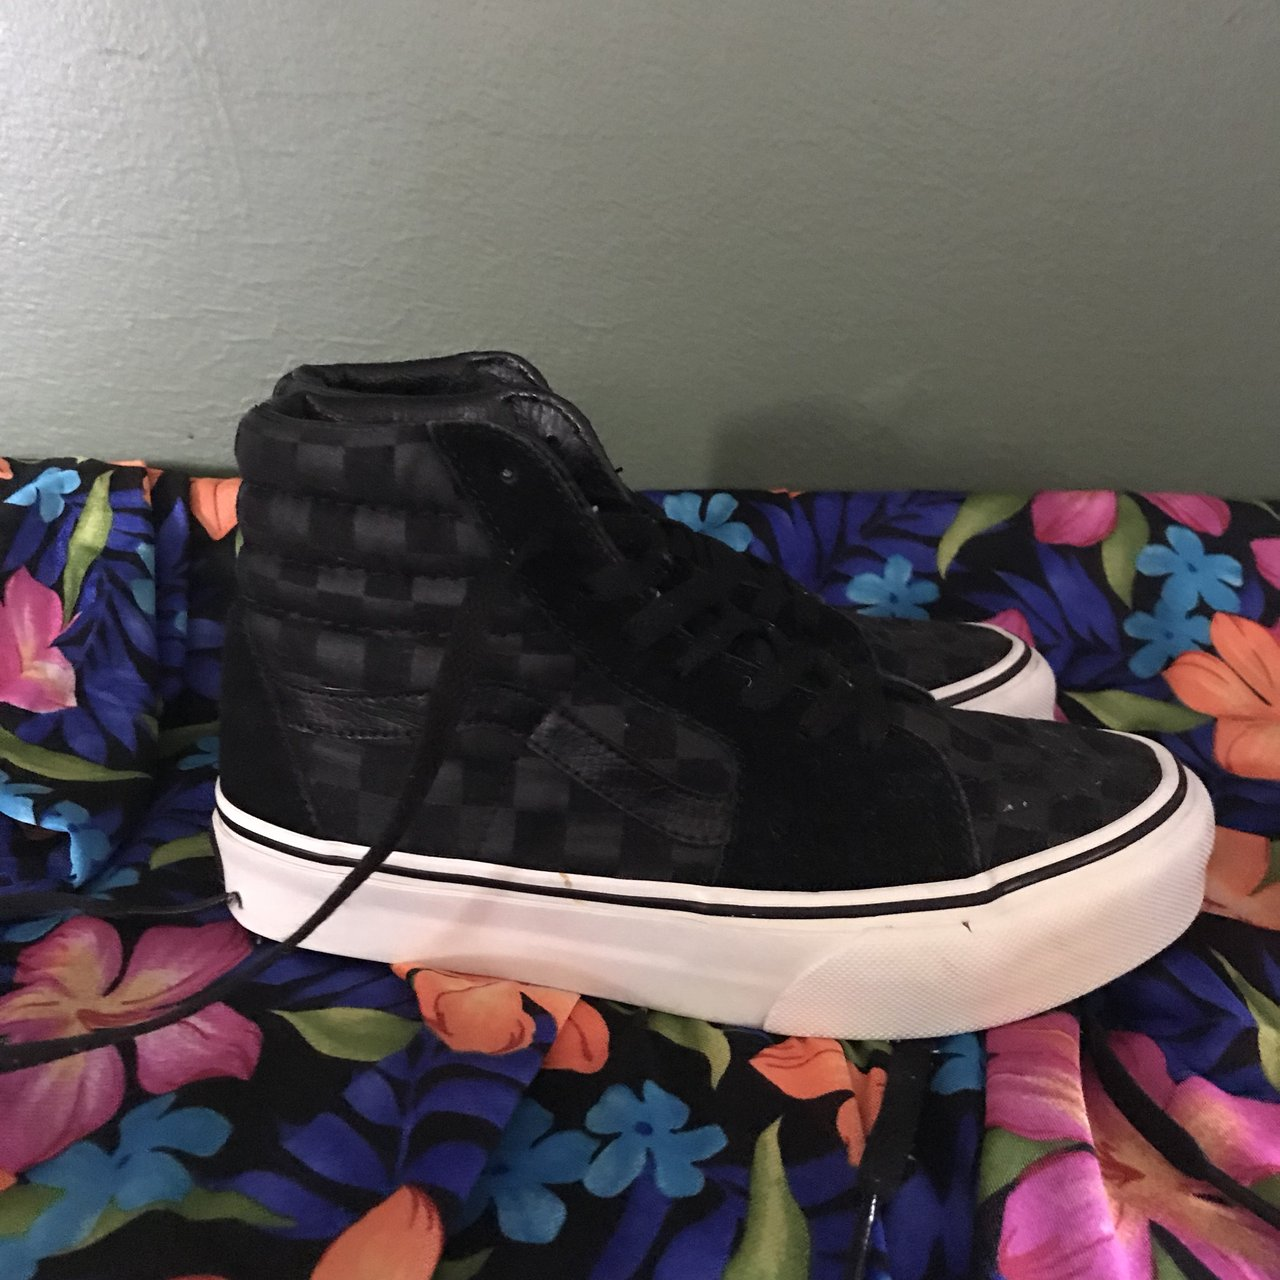 fba07fb578 VANS Black Grey Checkered Sk8-Hi Sneakers From shredding - - Depop